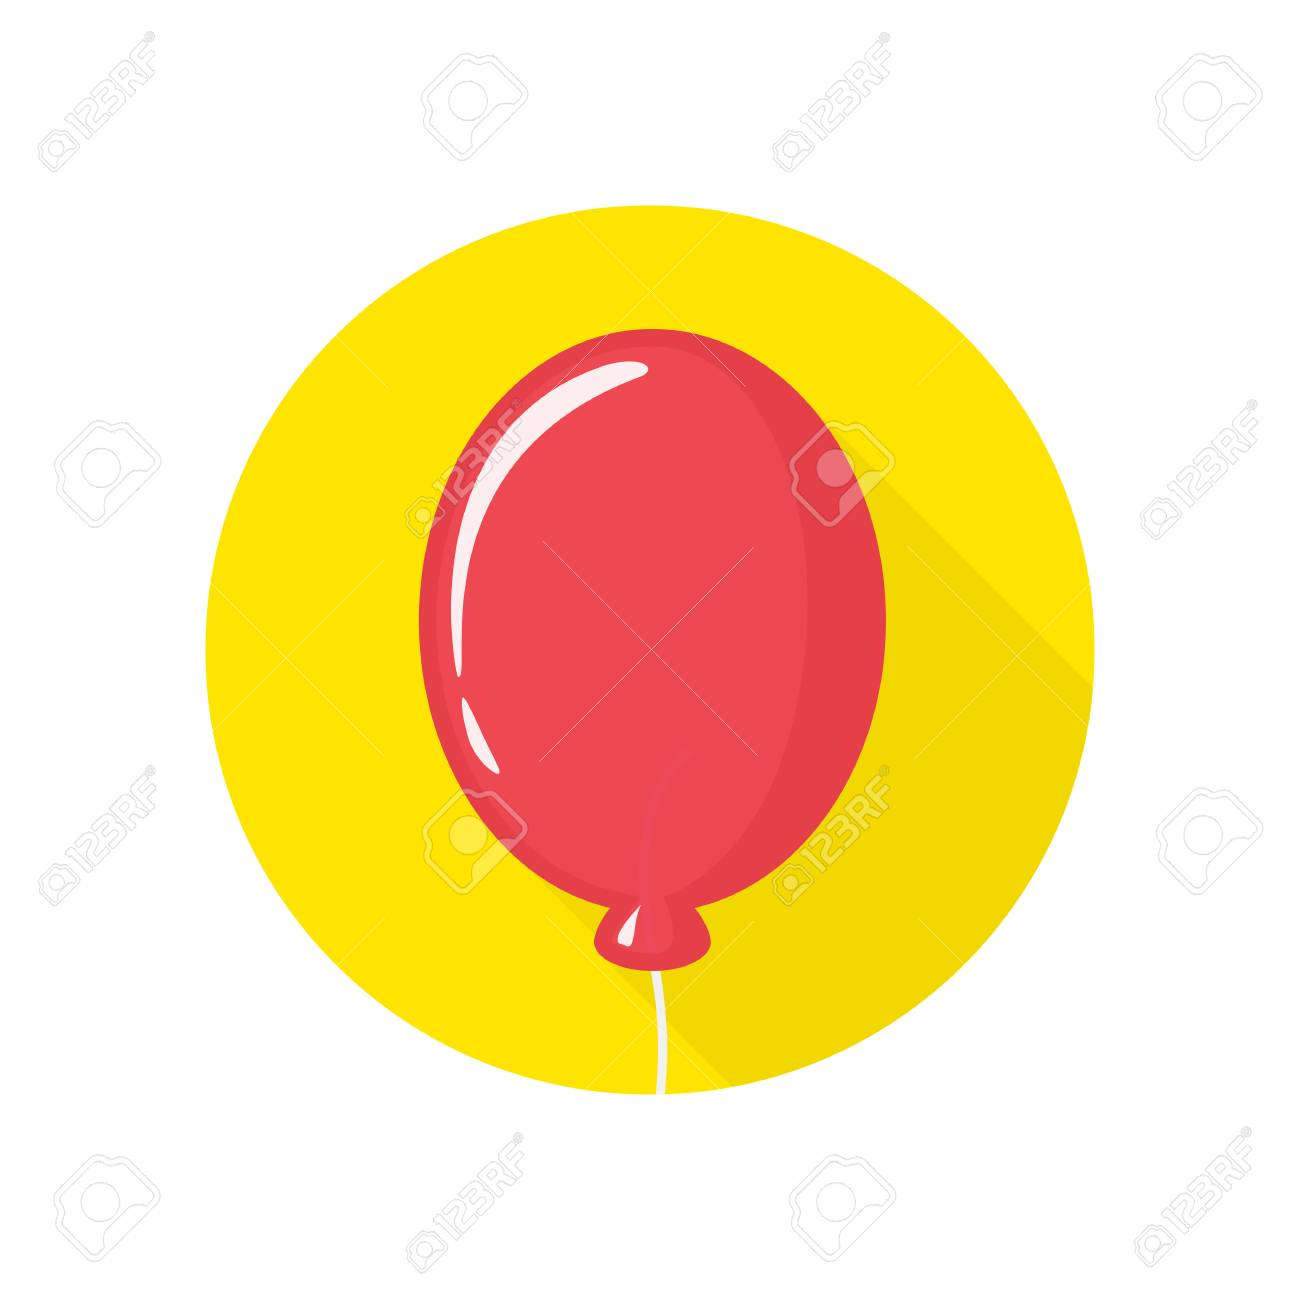 Red Balloon Sign Icon With Long Shadow Birthday Air Balloon